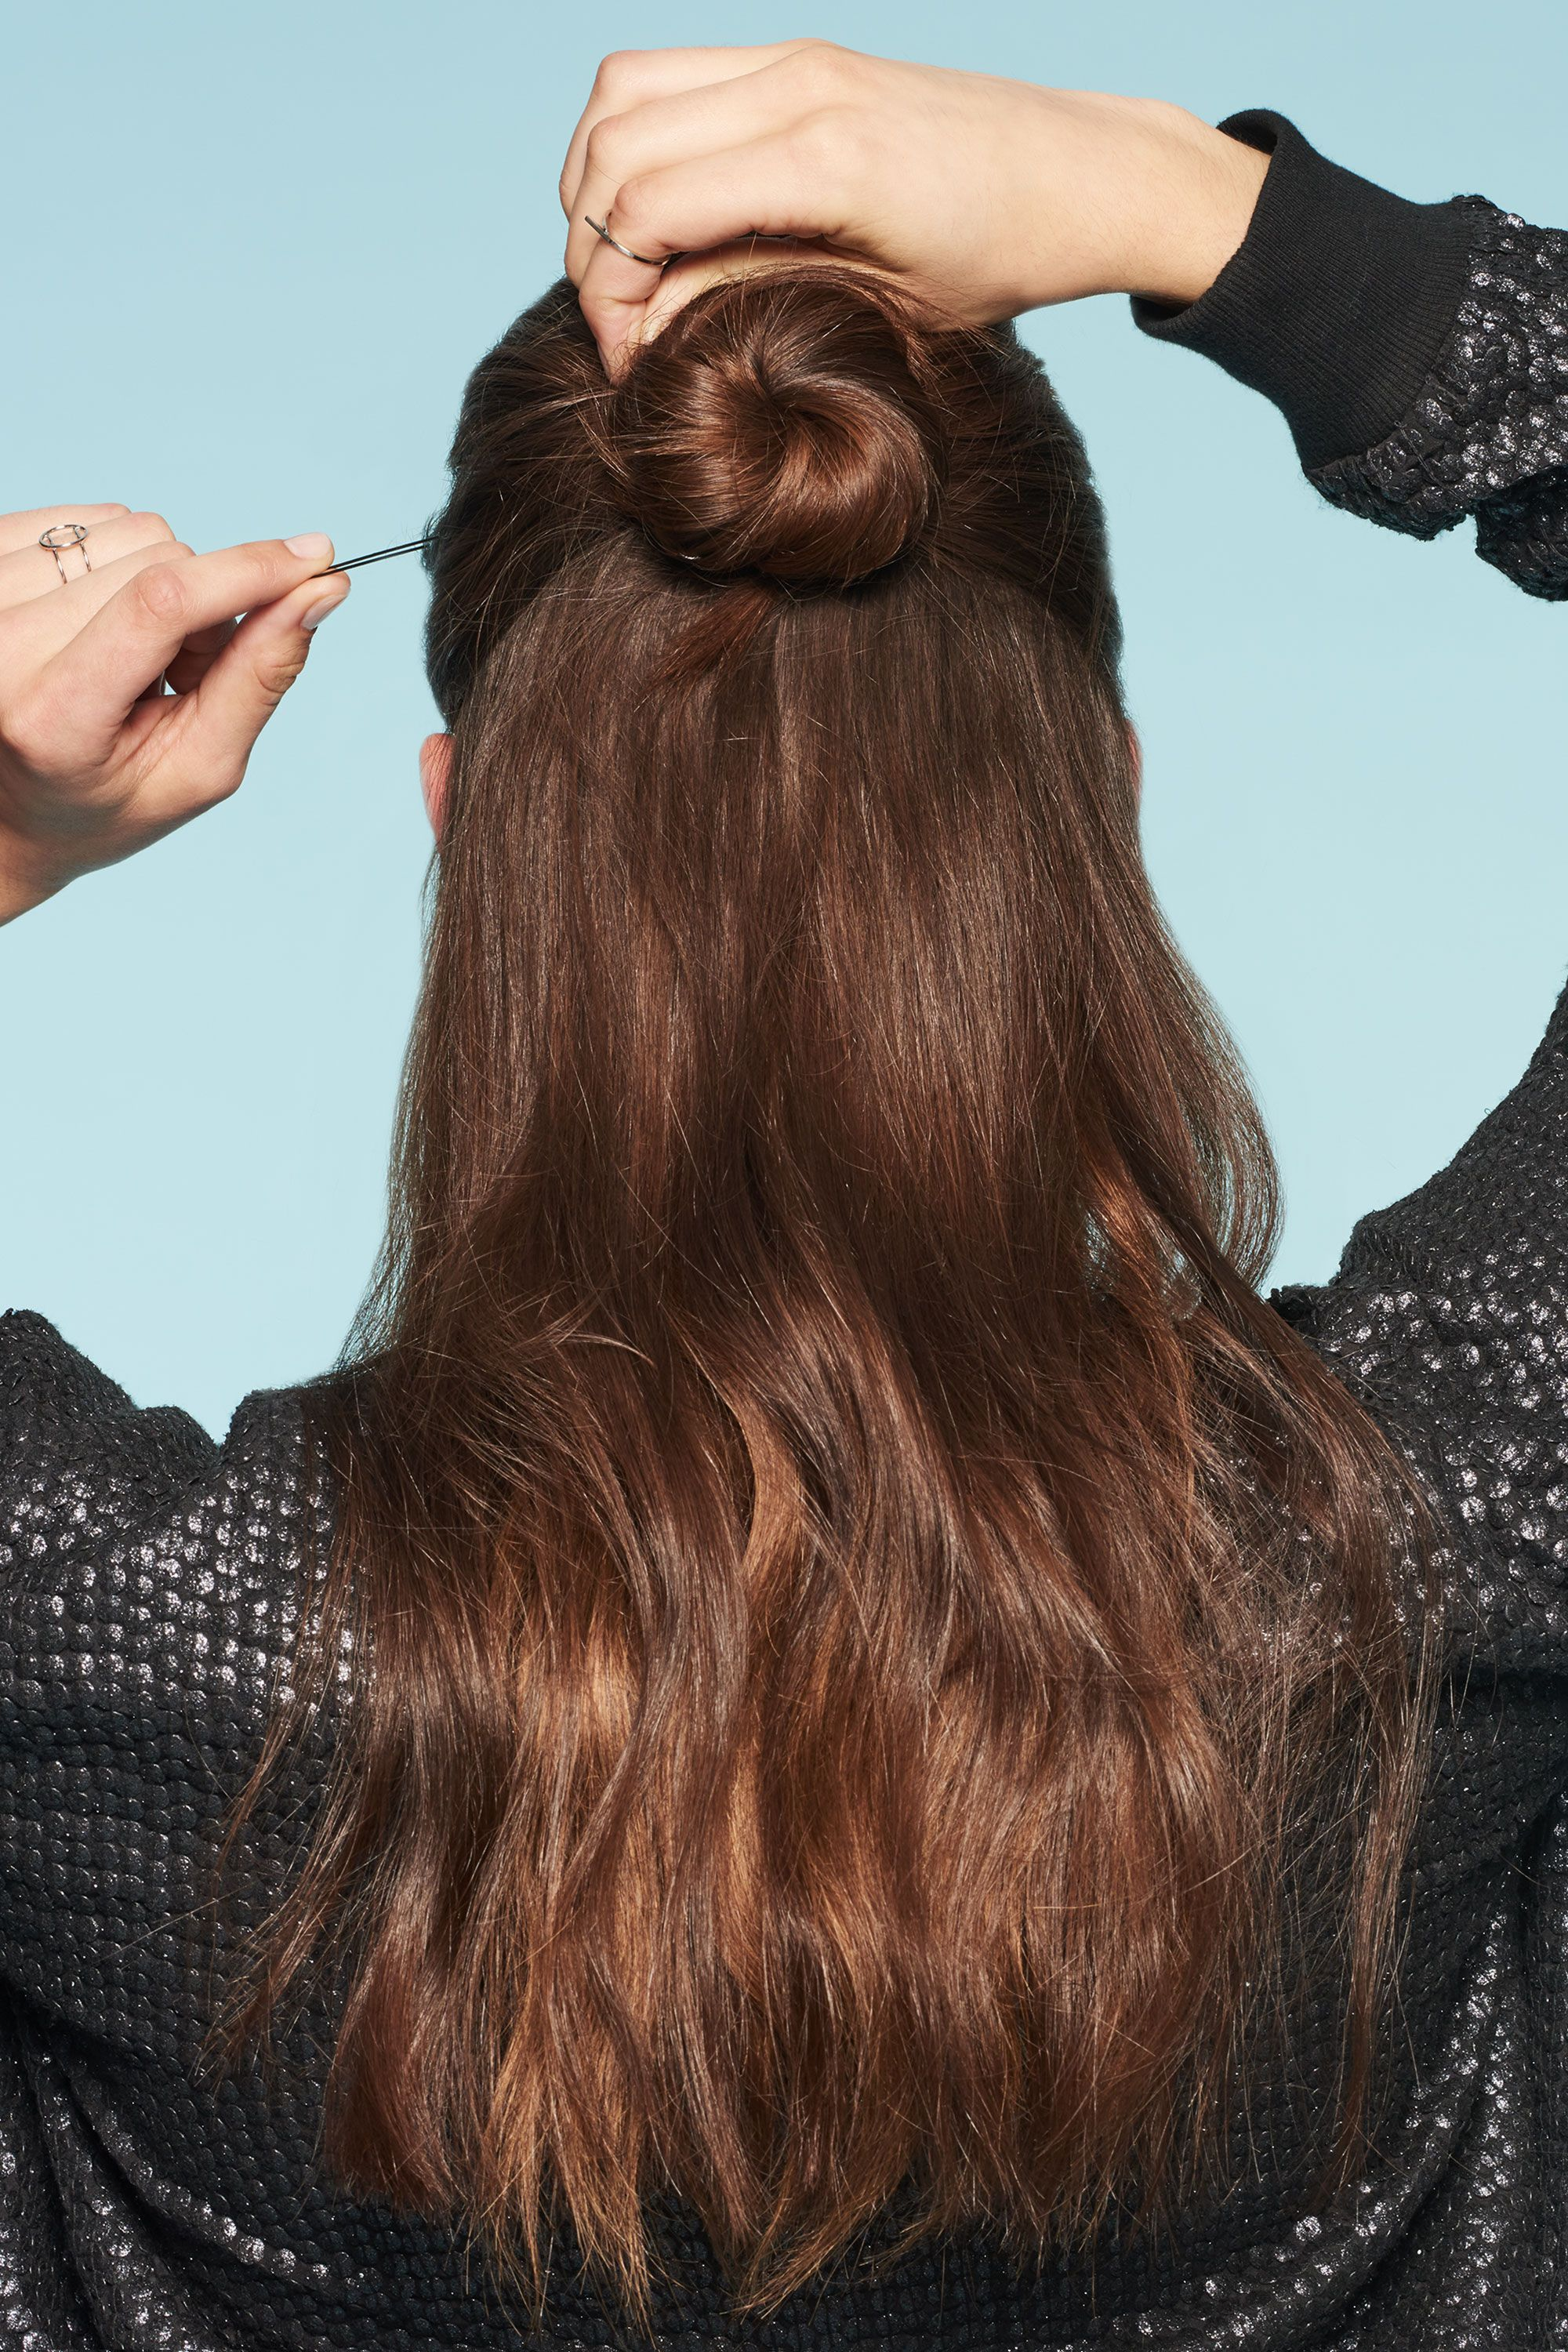 <p>Twist the ponytail and wrap it around the elastic to create a basic bun. Secure the ends with bobby pins, crisscrossing them for budge-free hold.</p>